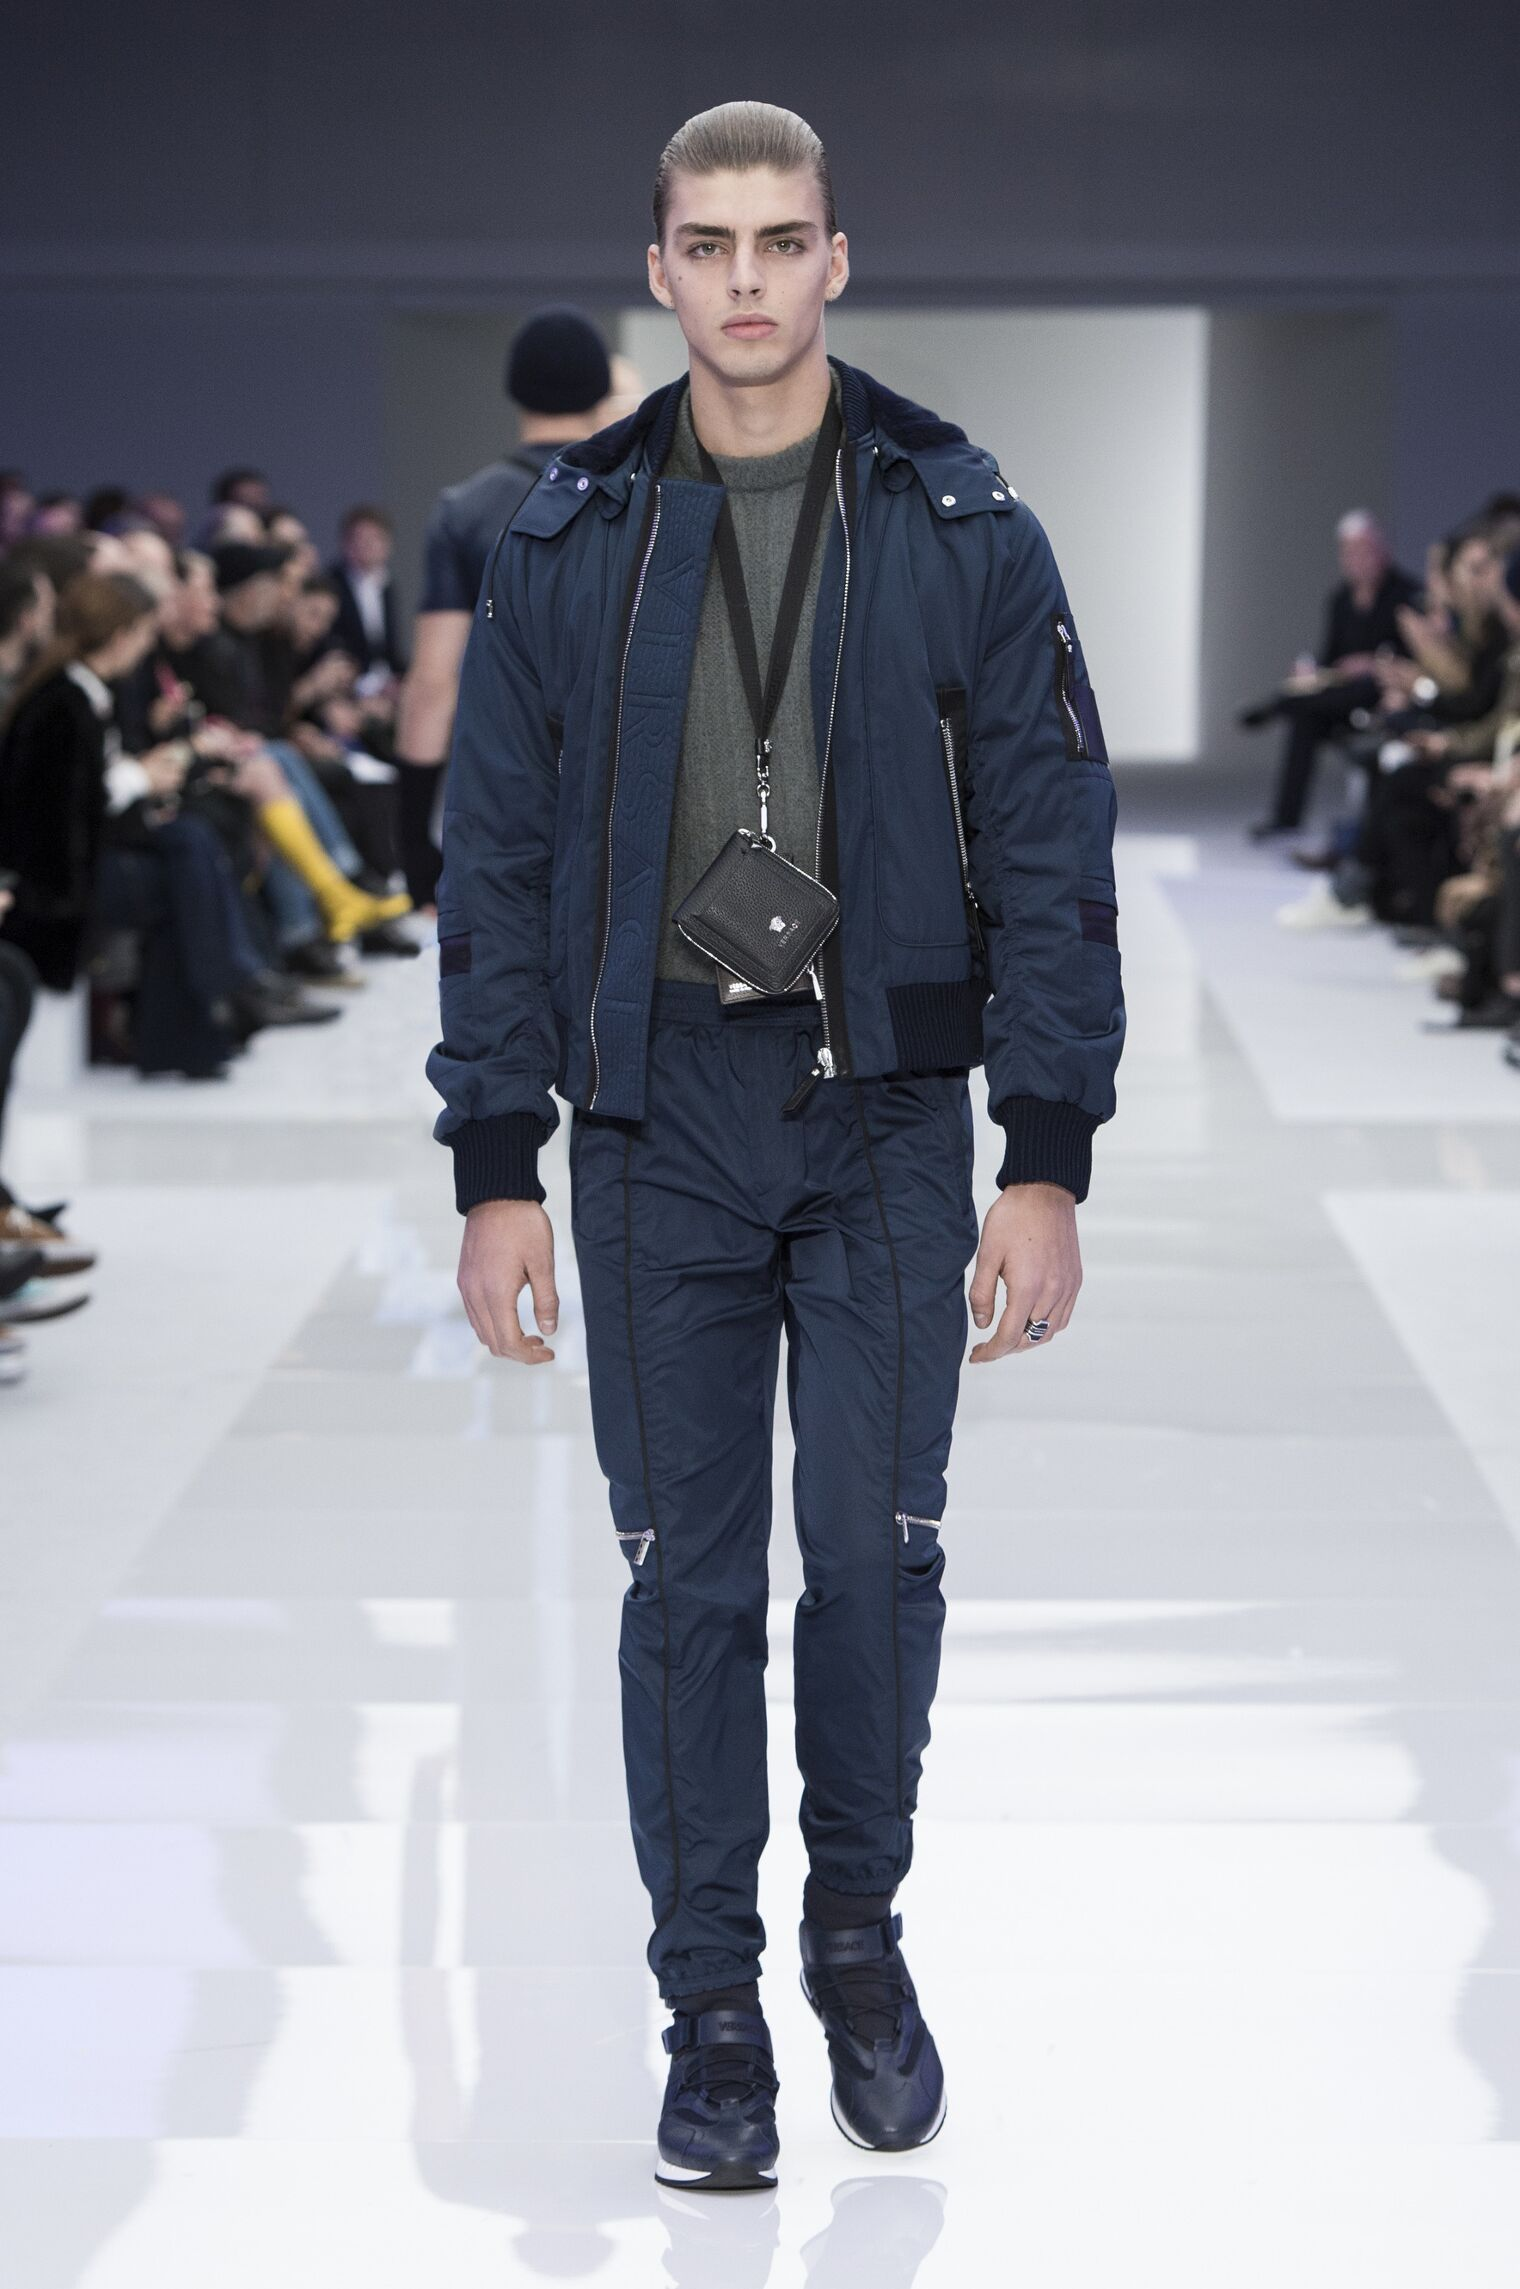 Catwalk Versace Man Fashion Show Winter 2016